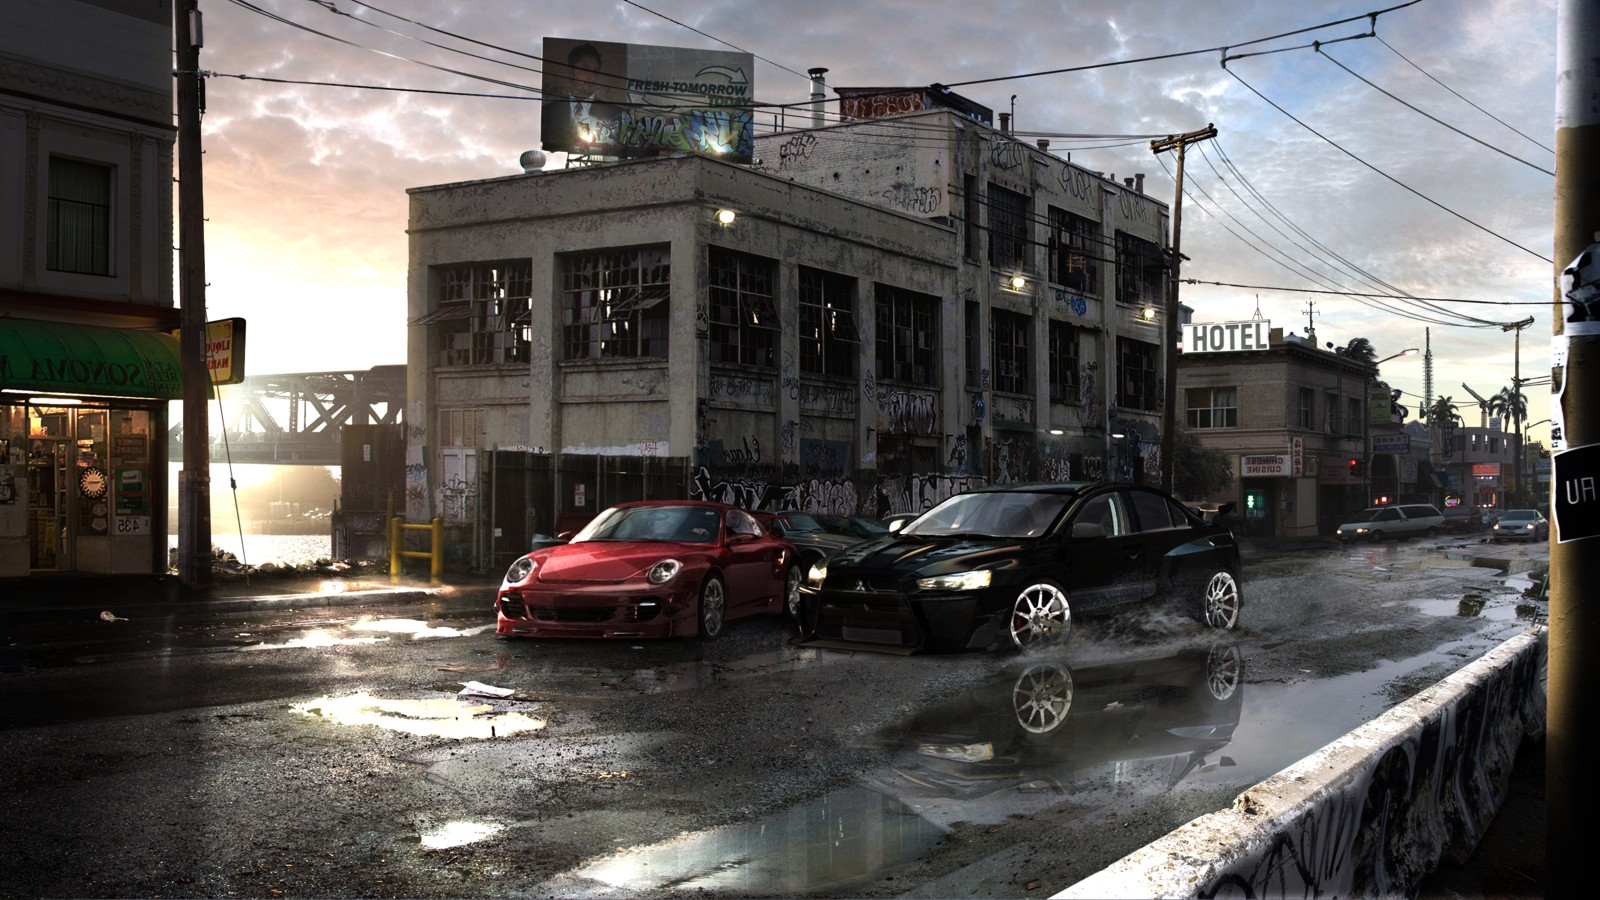 Nfs Most Wanted 2 Cars Wallpapers Imagine If The Next Need For Speed Really Looked Like This